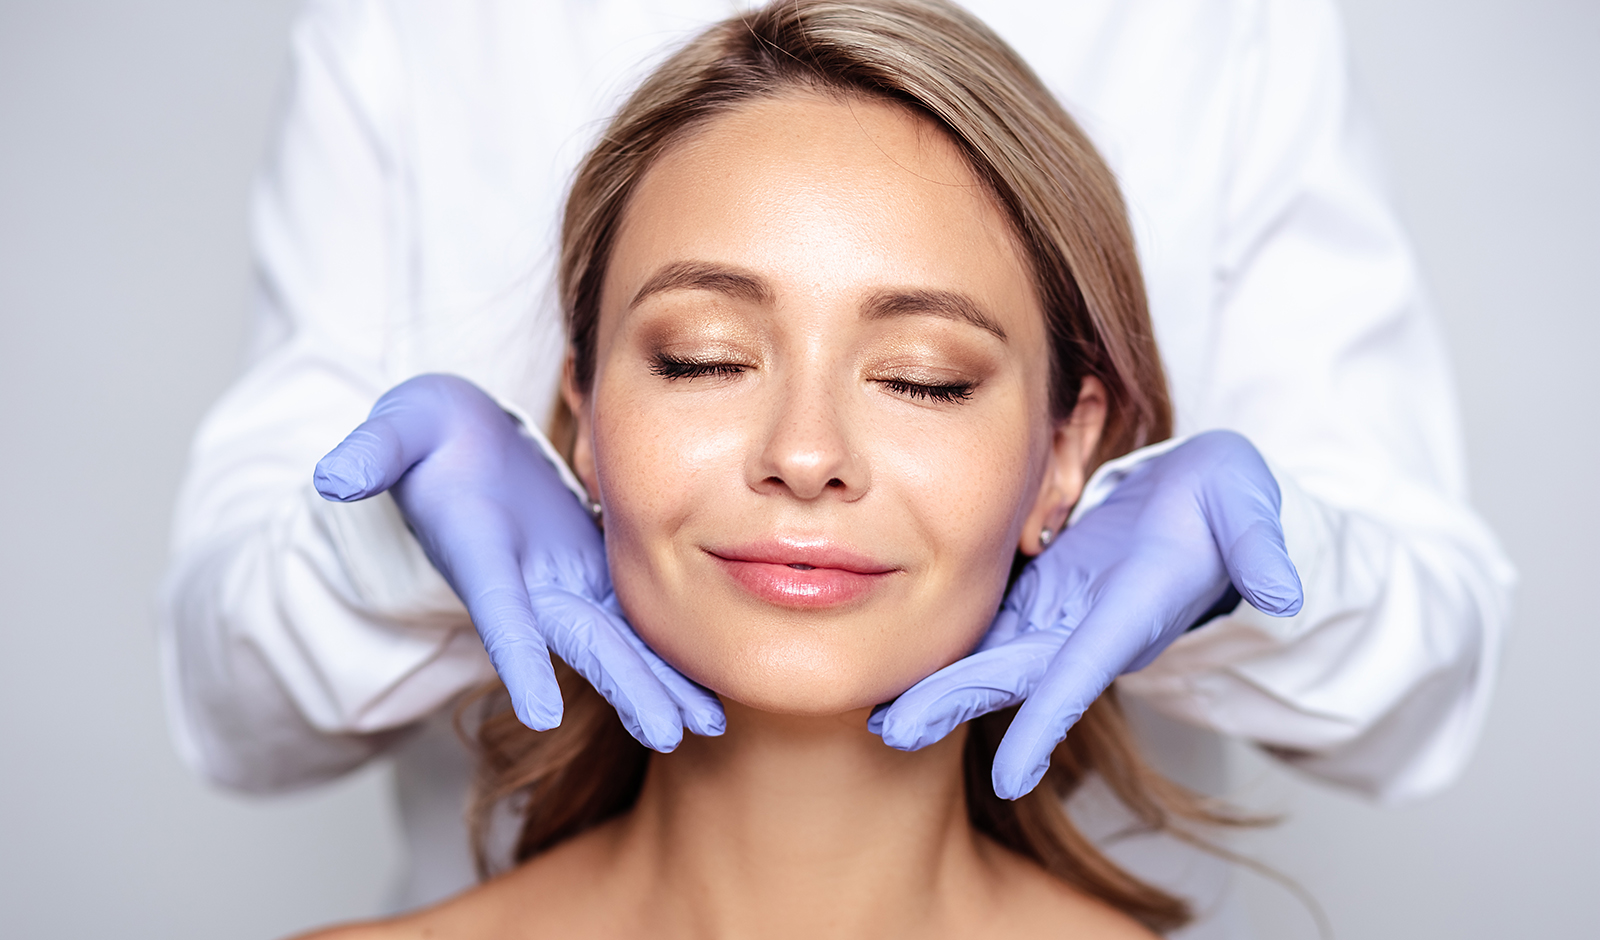 4-treatments-for-a-youthful-glow-skincare-treatments-skin-care